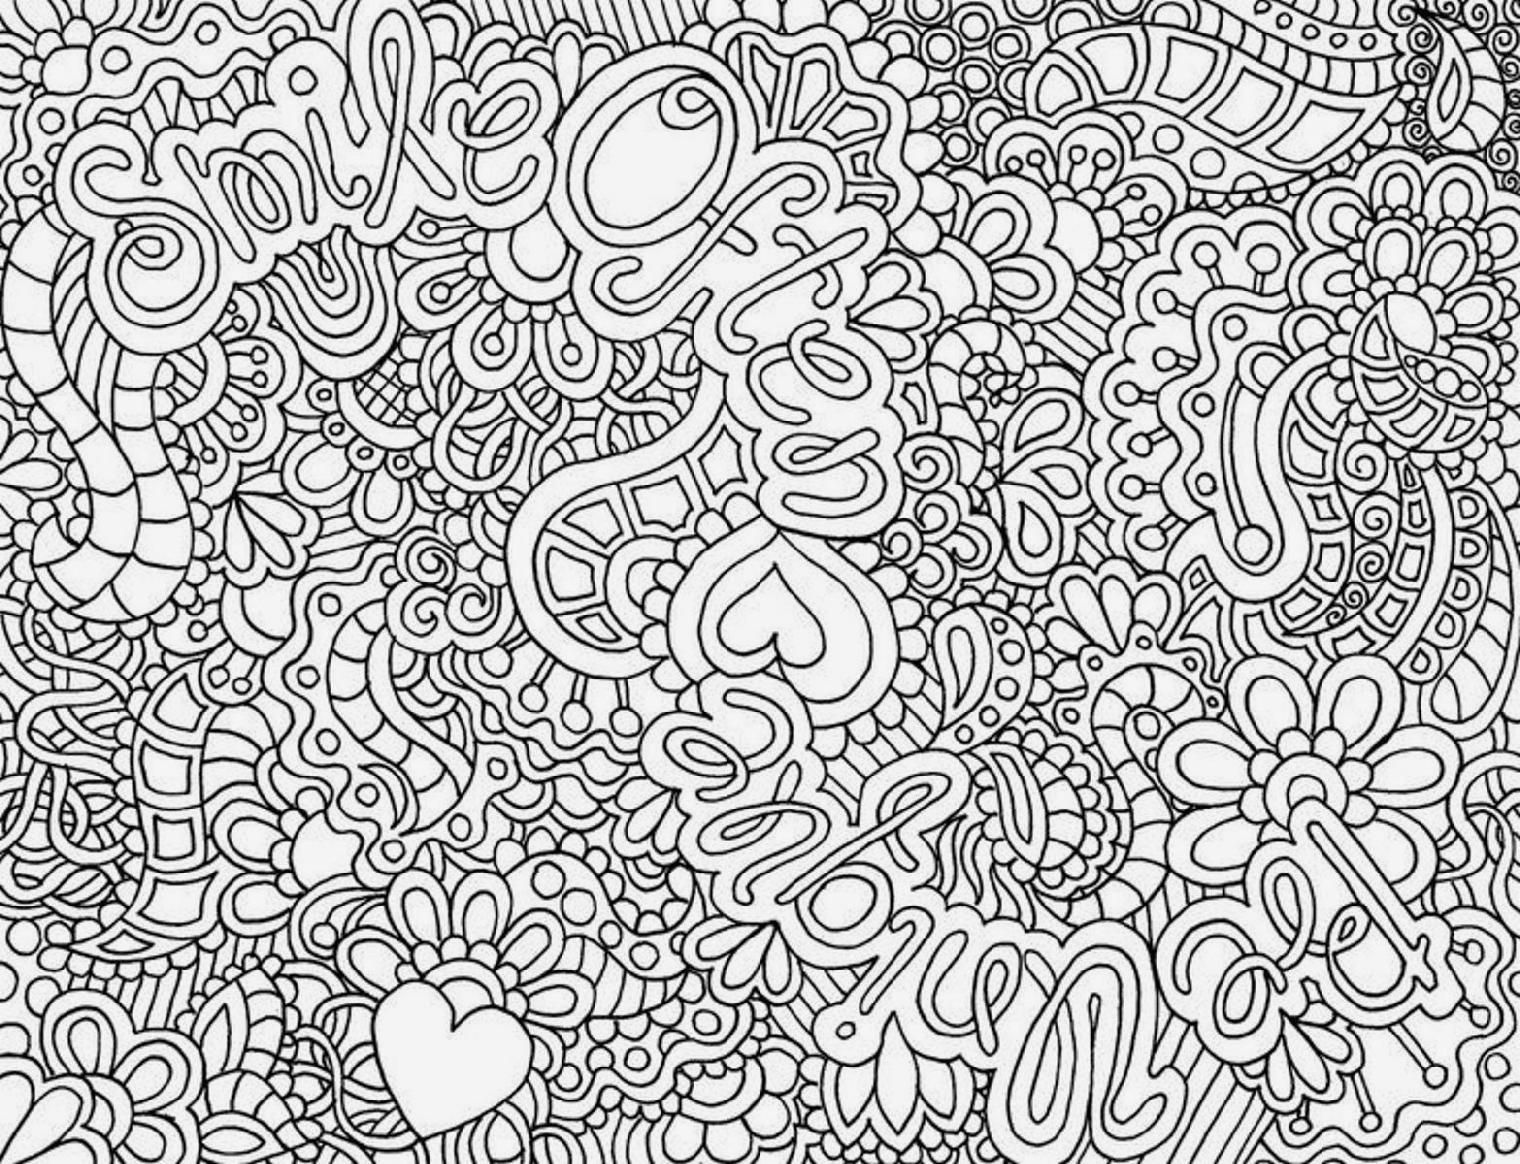 These Free Printable Coloring Book Pages Of Flowers Provide Hours